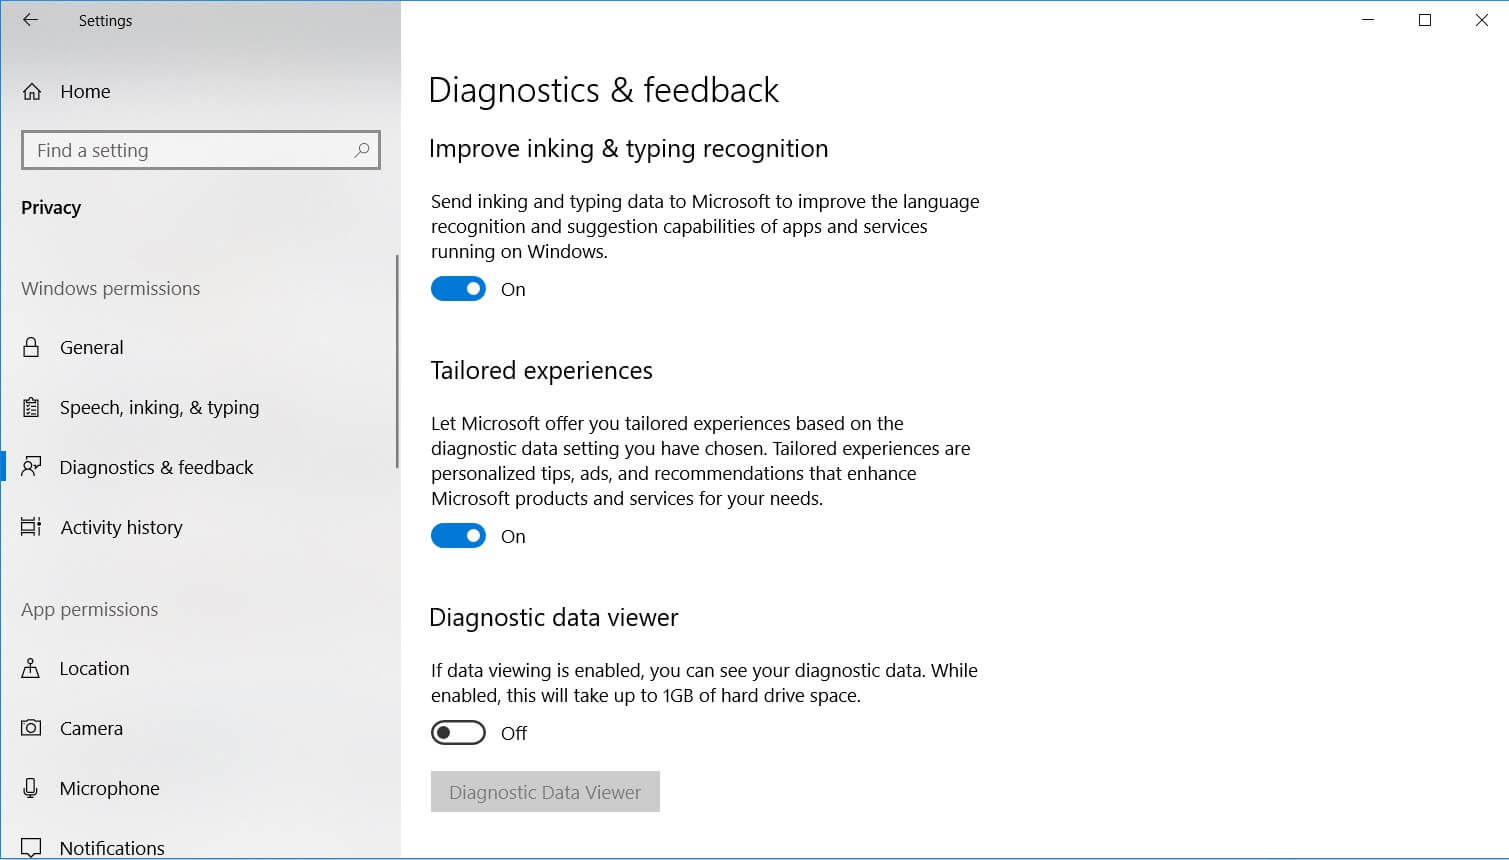 Diagnostics and Feedback in Windows 10